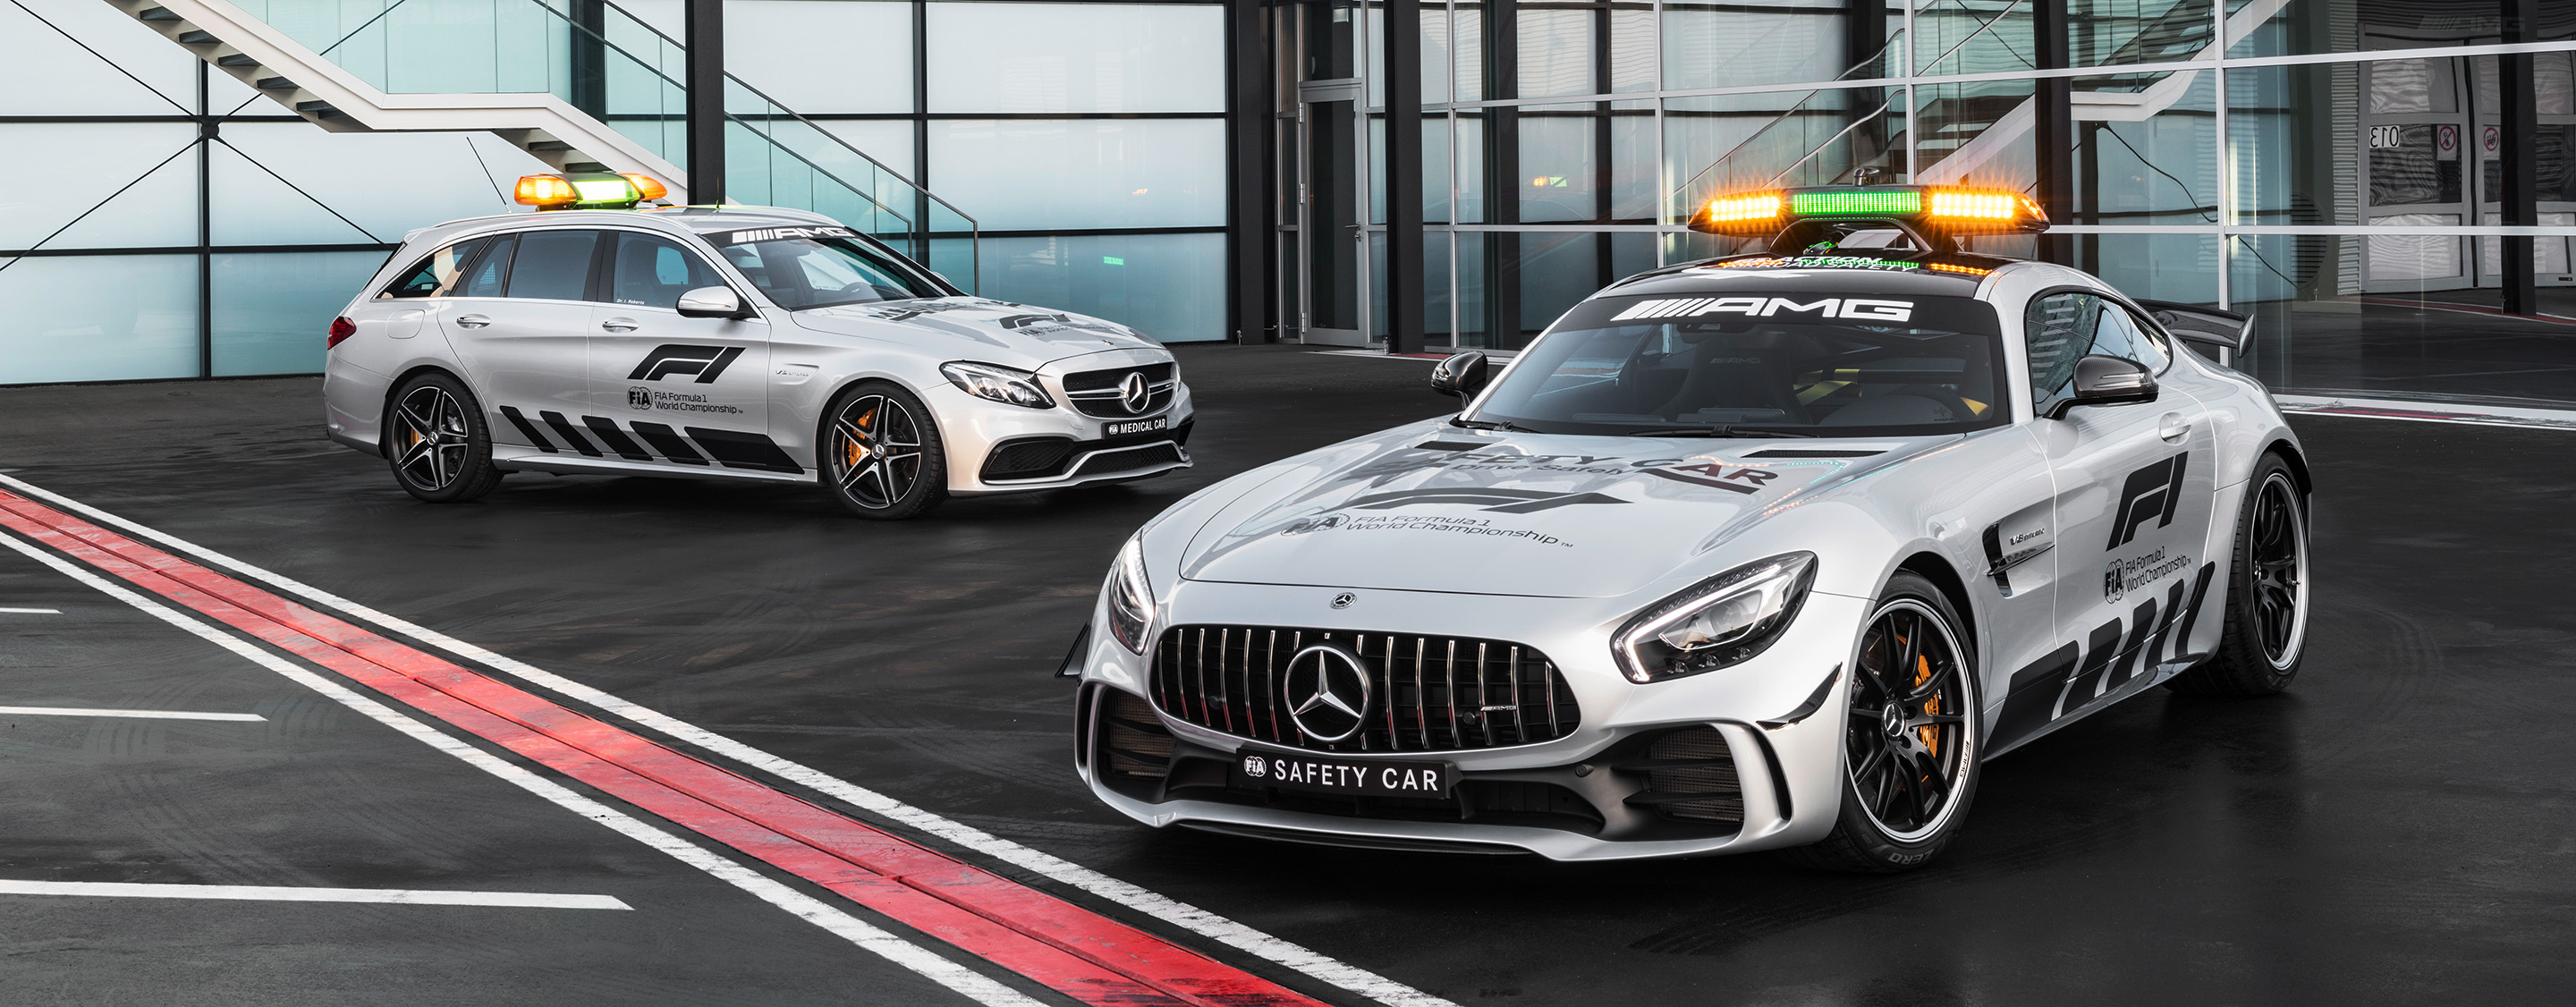 TrackWorthy - 2018 Mercedes-AMG GT R Formula 1 Safety Car and Medical Car (3)